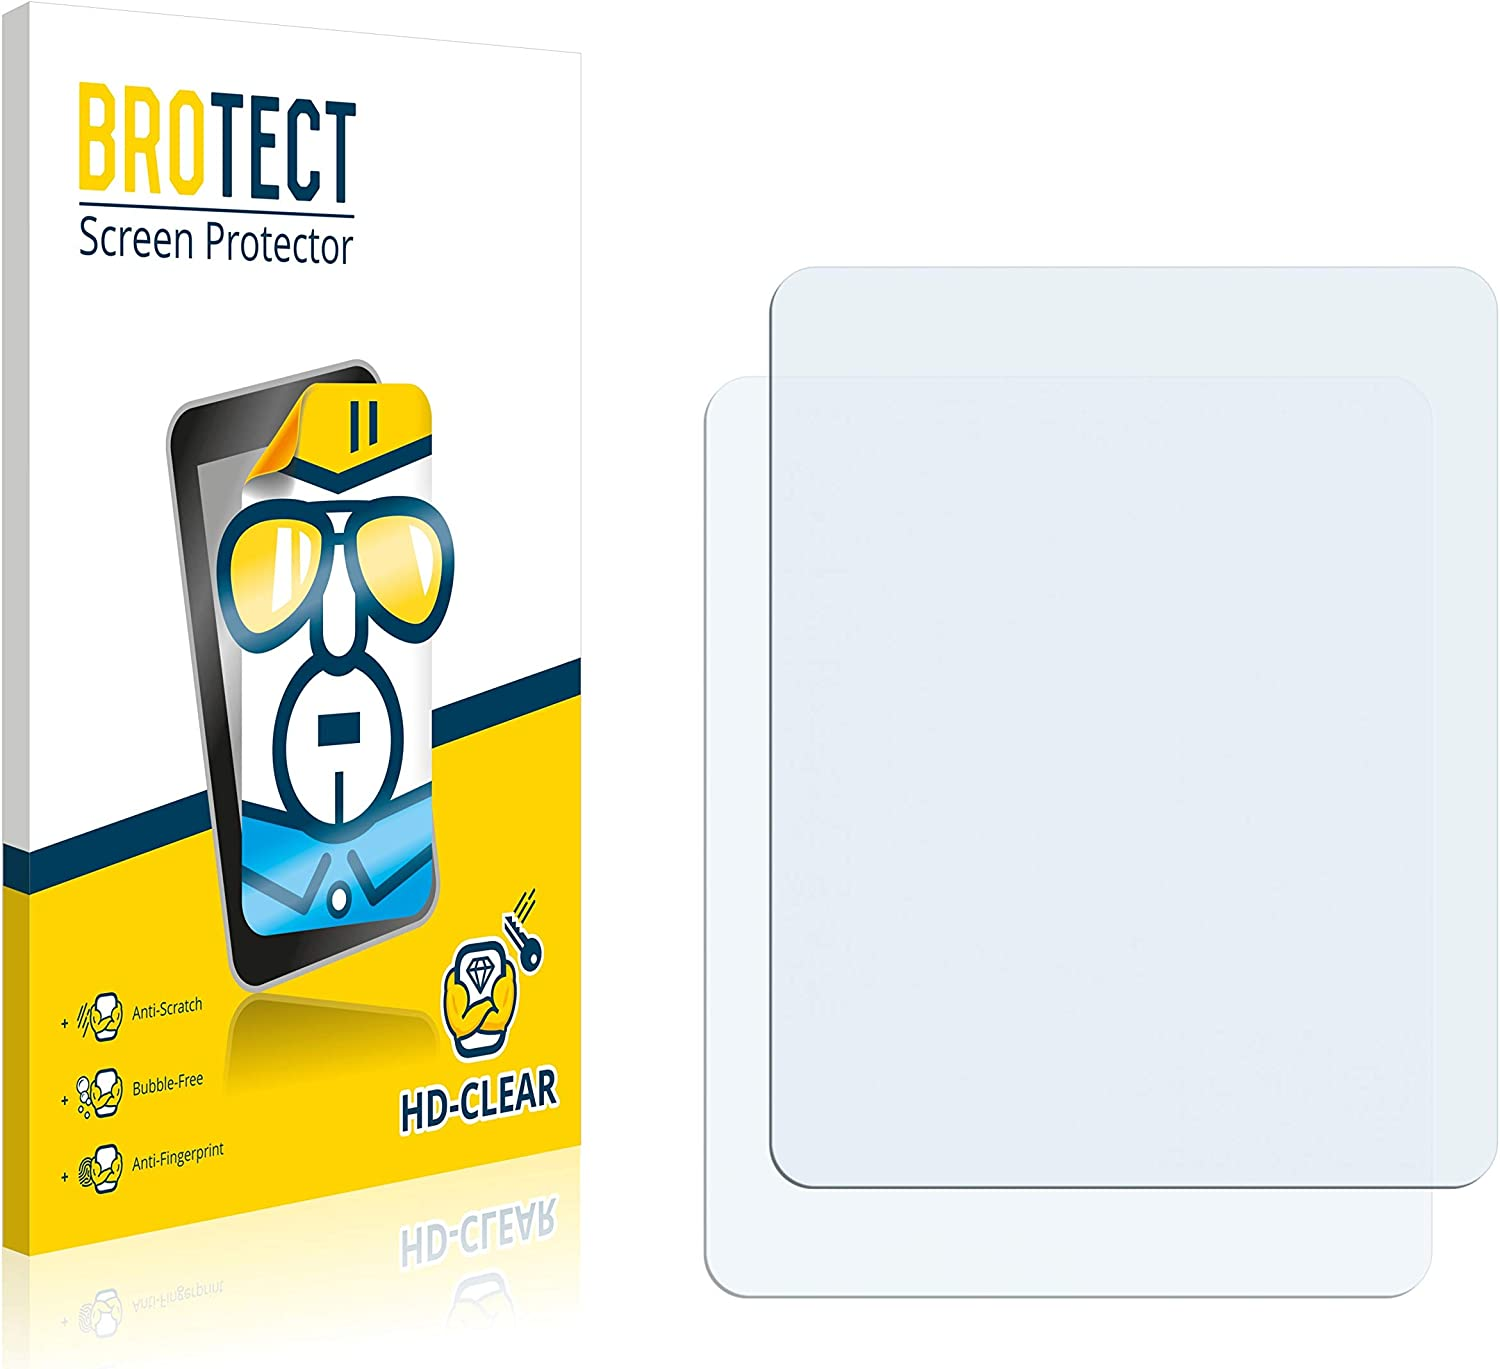 HD-Clear Protection Film brotect 2-Pack Screen Protector compatible with Volvo Polestar 2 2021 Infotainment System